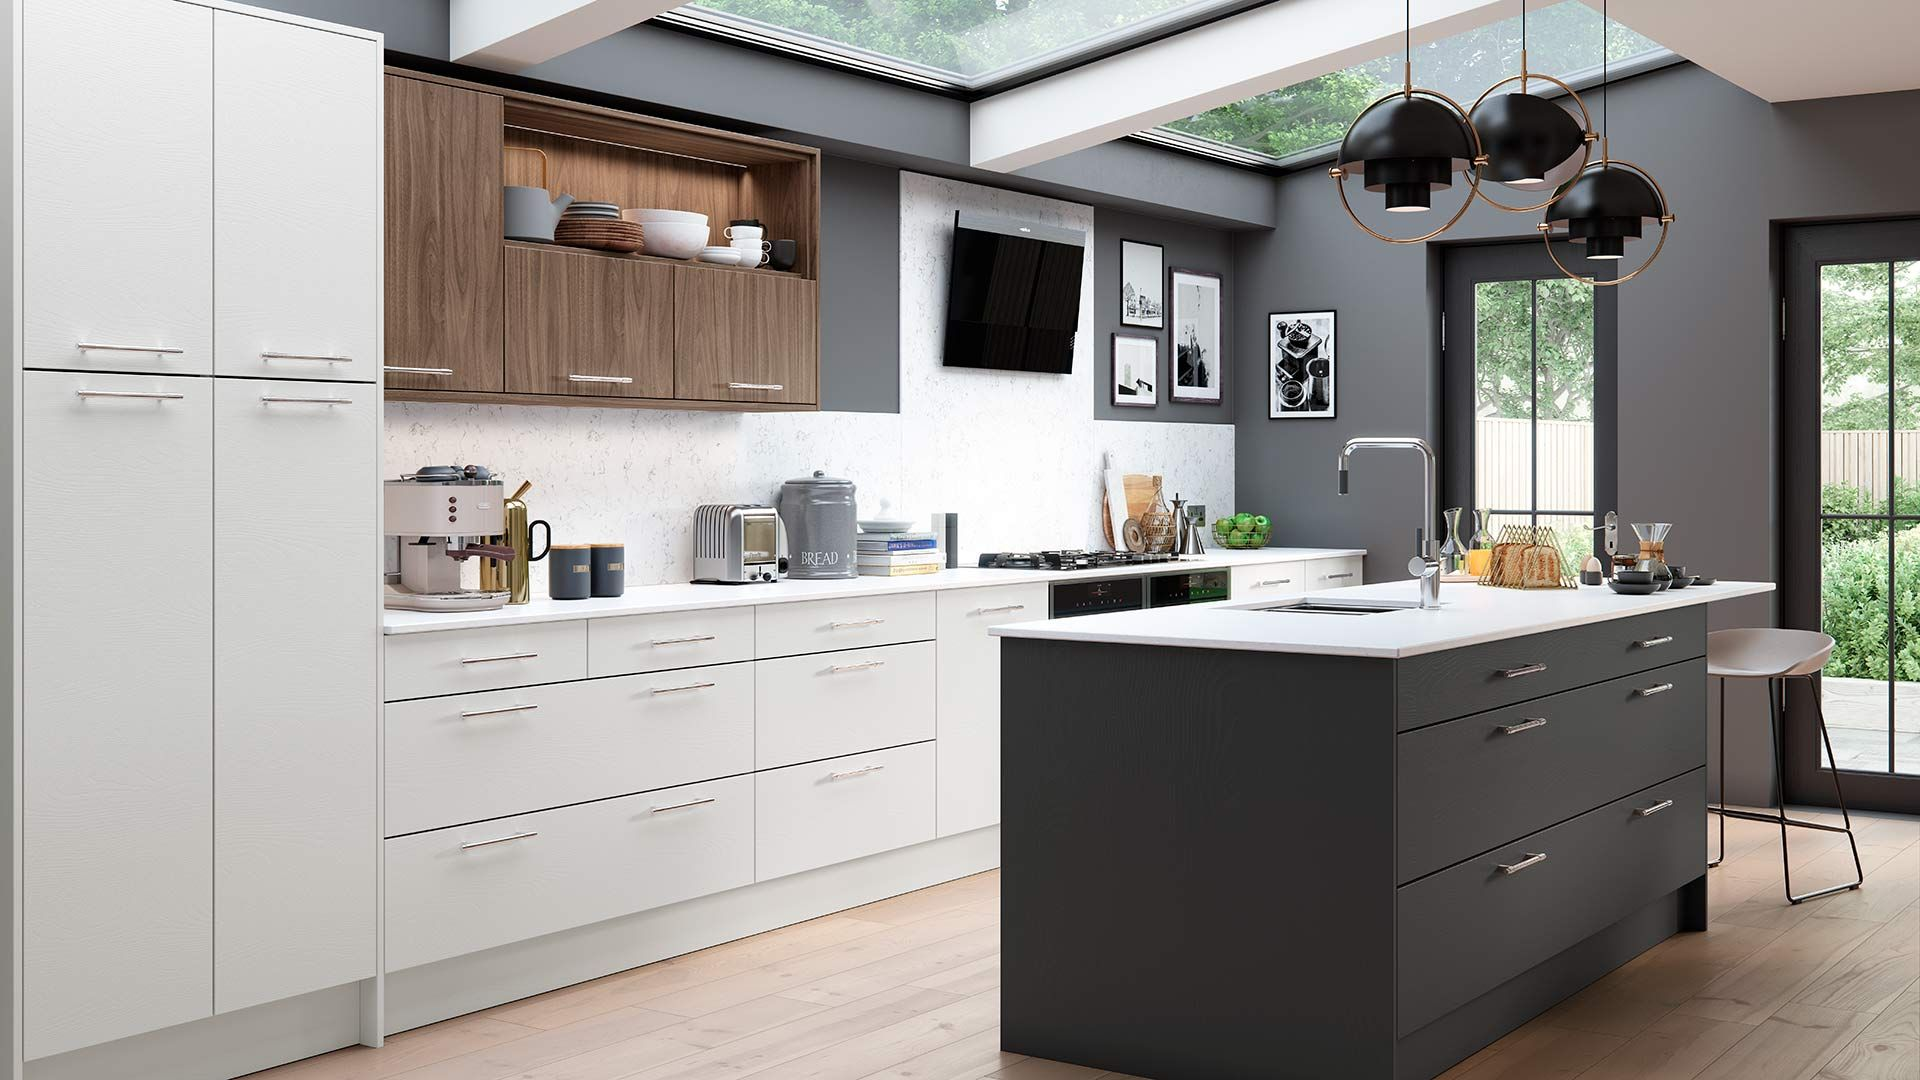 Modernise Your Kitchen With A Contrasting Grey Scale Colour Palette Design Arredamento Moderno Cucina Arredamento Moderno Arredamento